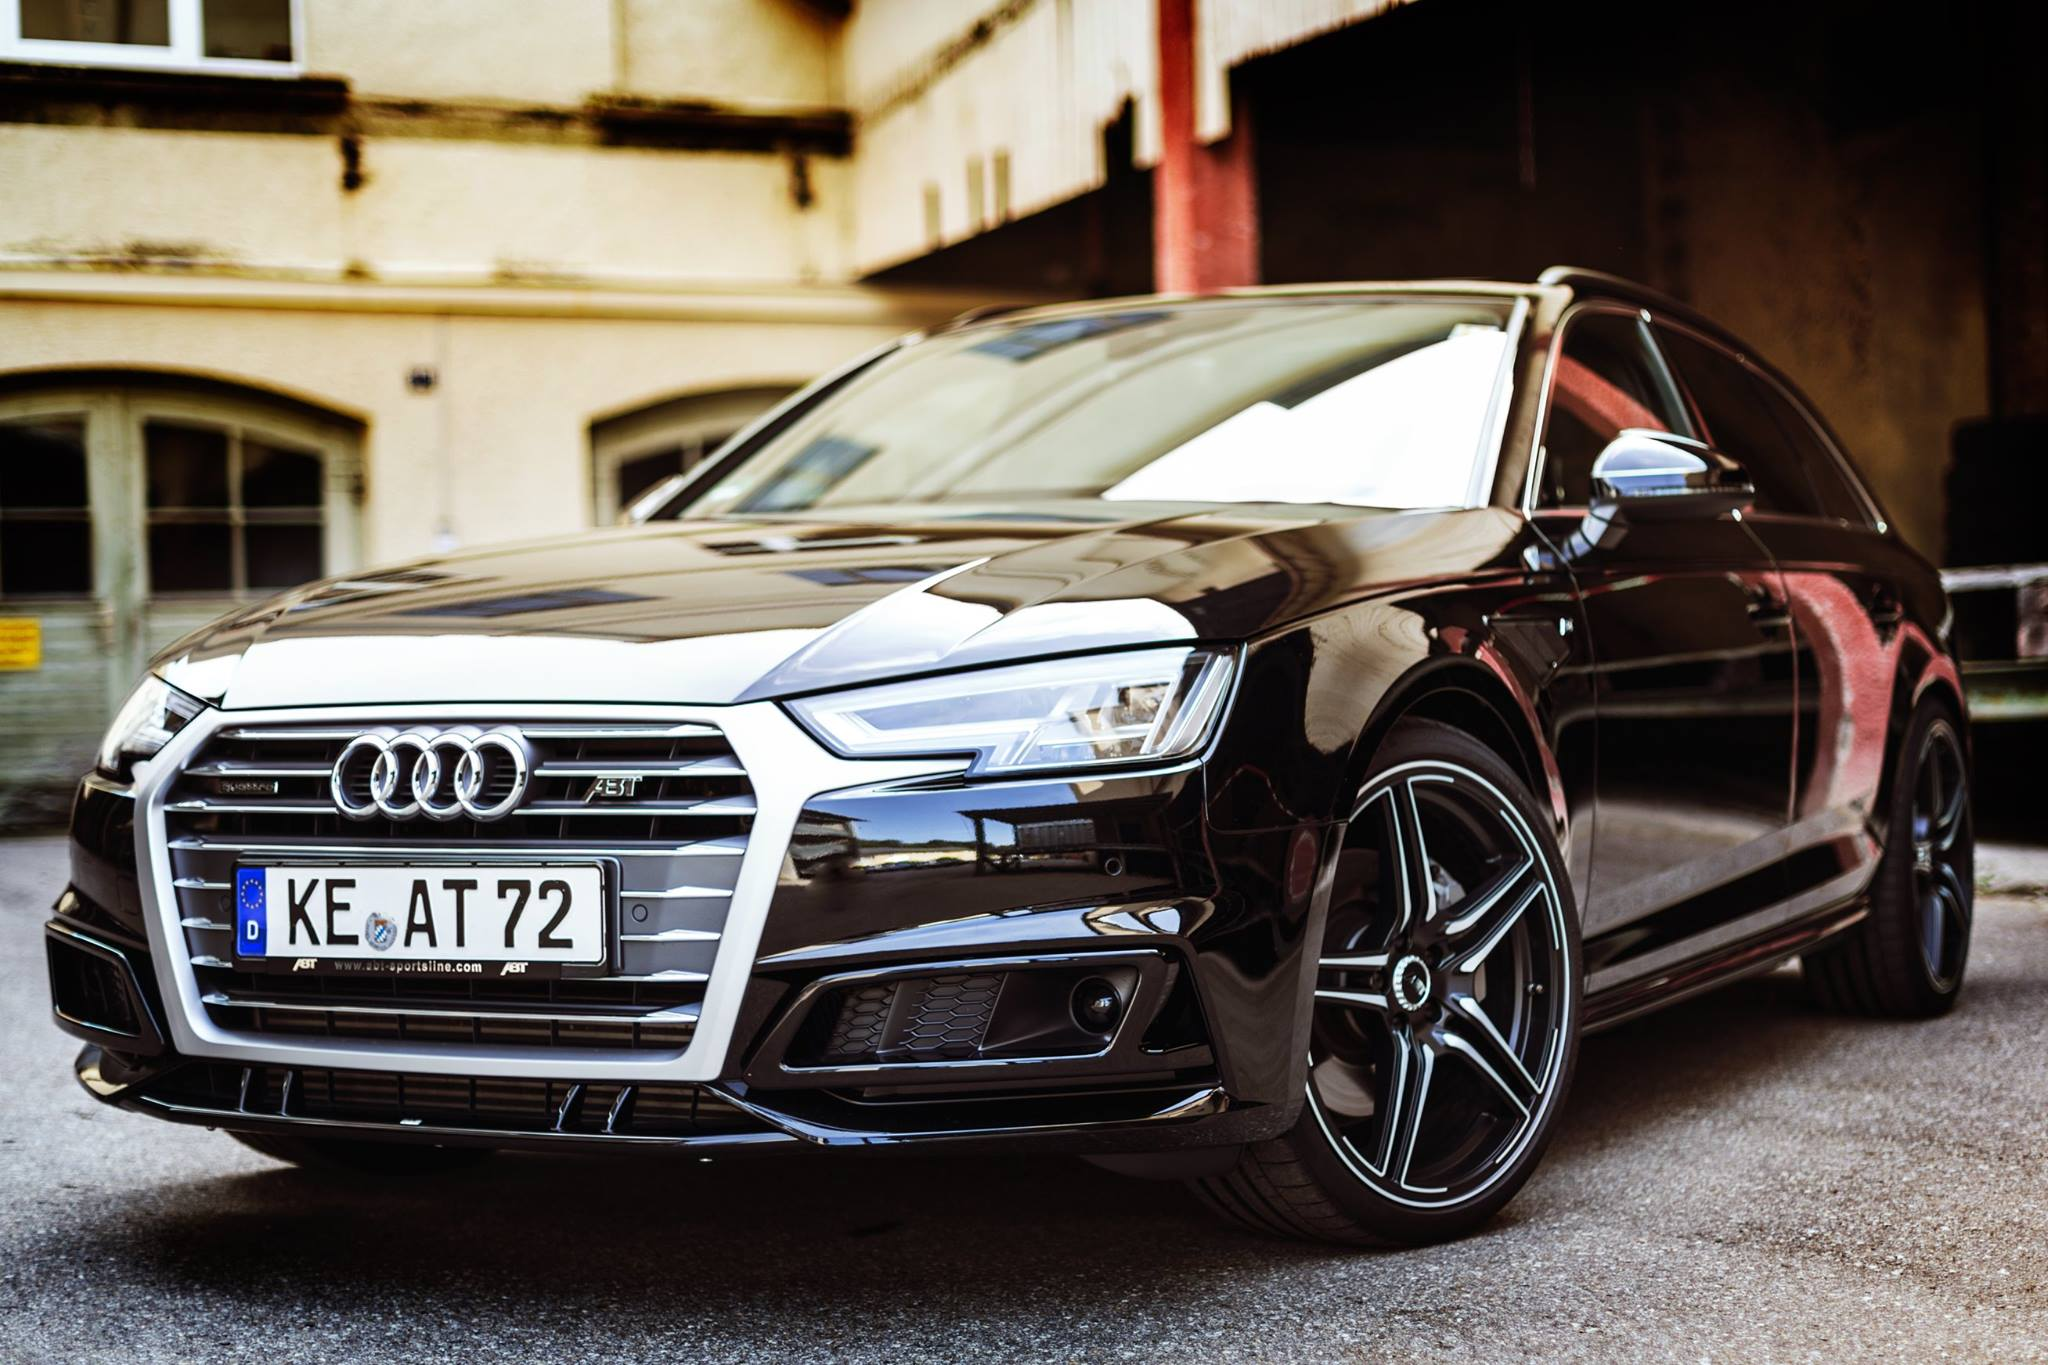 ABT Audi AS4 Avant Makes 325 HP on Diesel, Hits 163 MPH in Germany - autoevolution